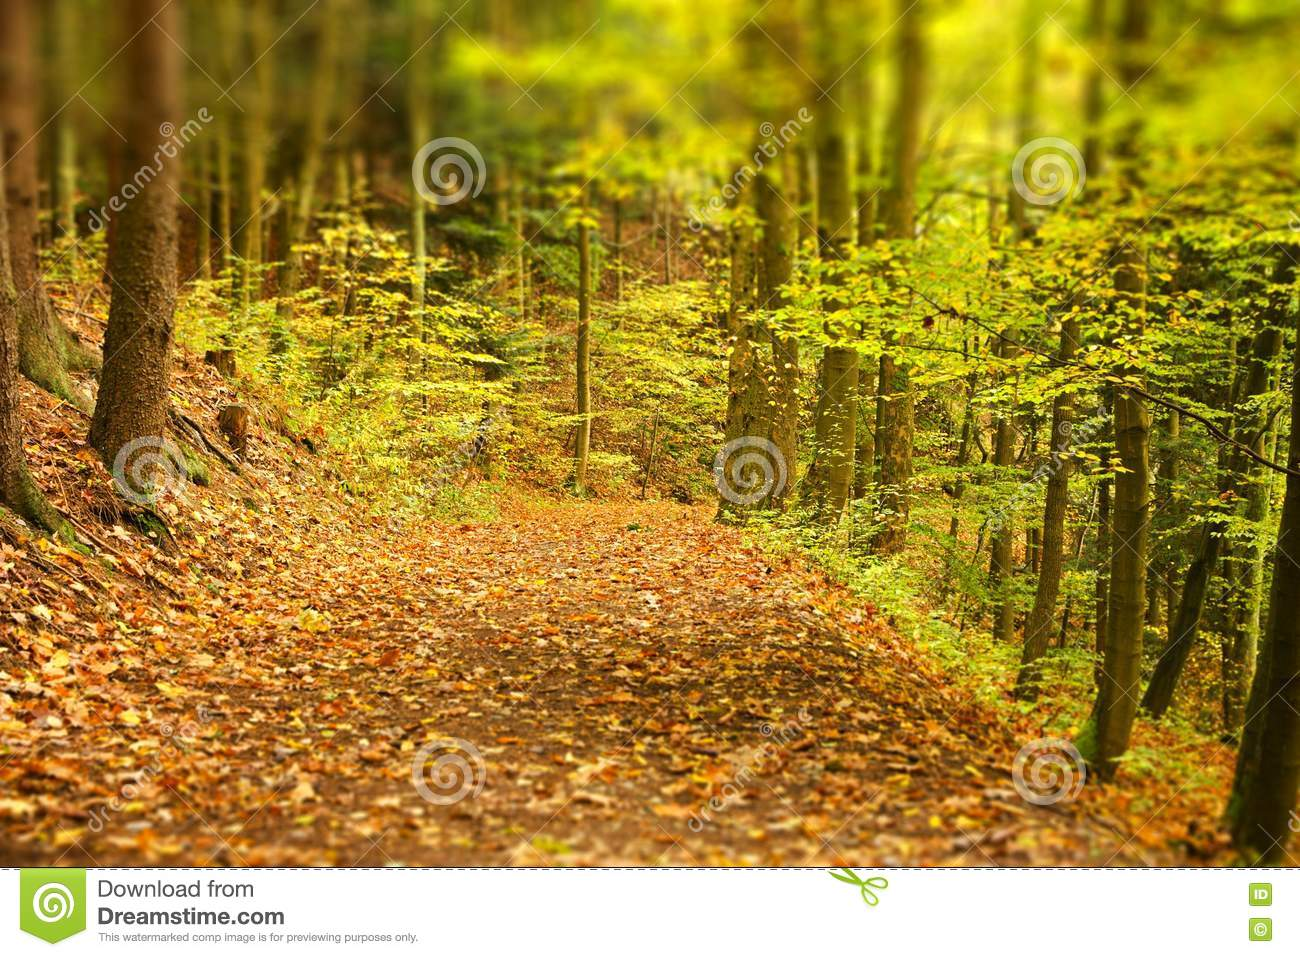 Earthy forest path